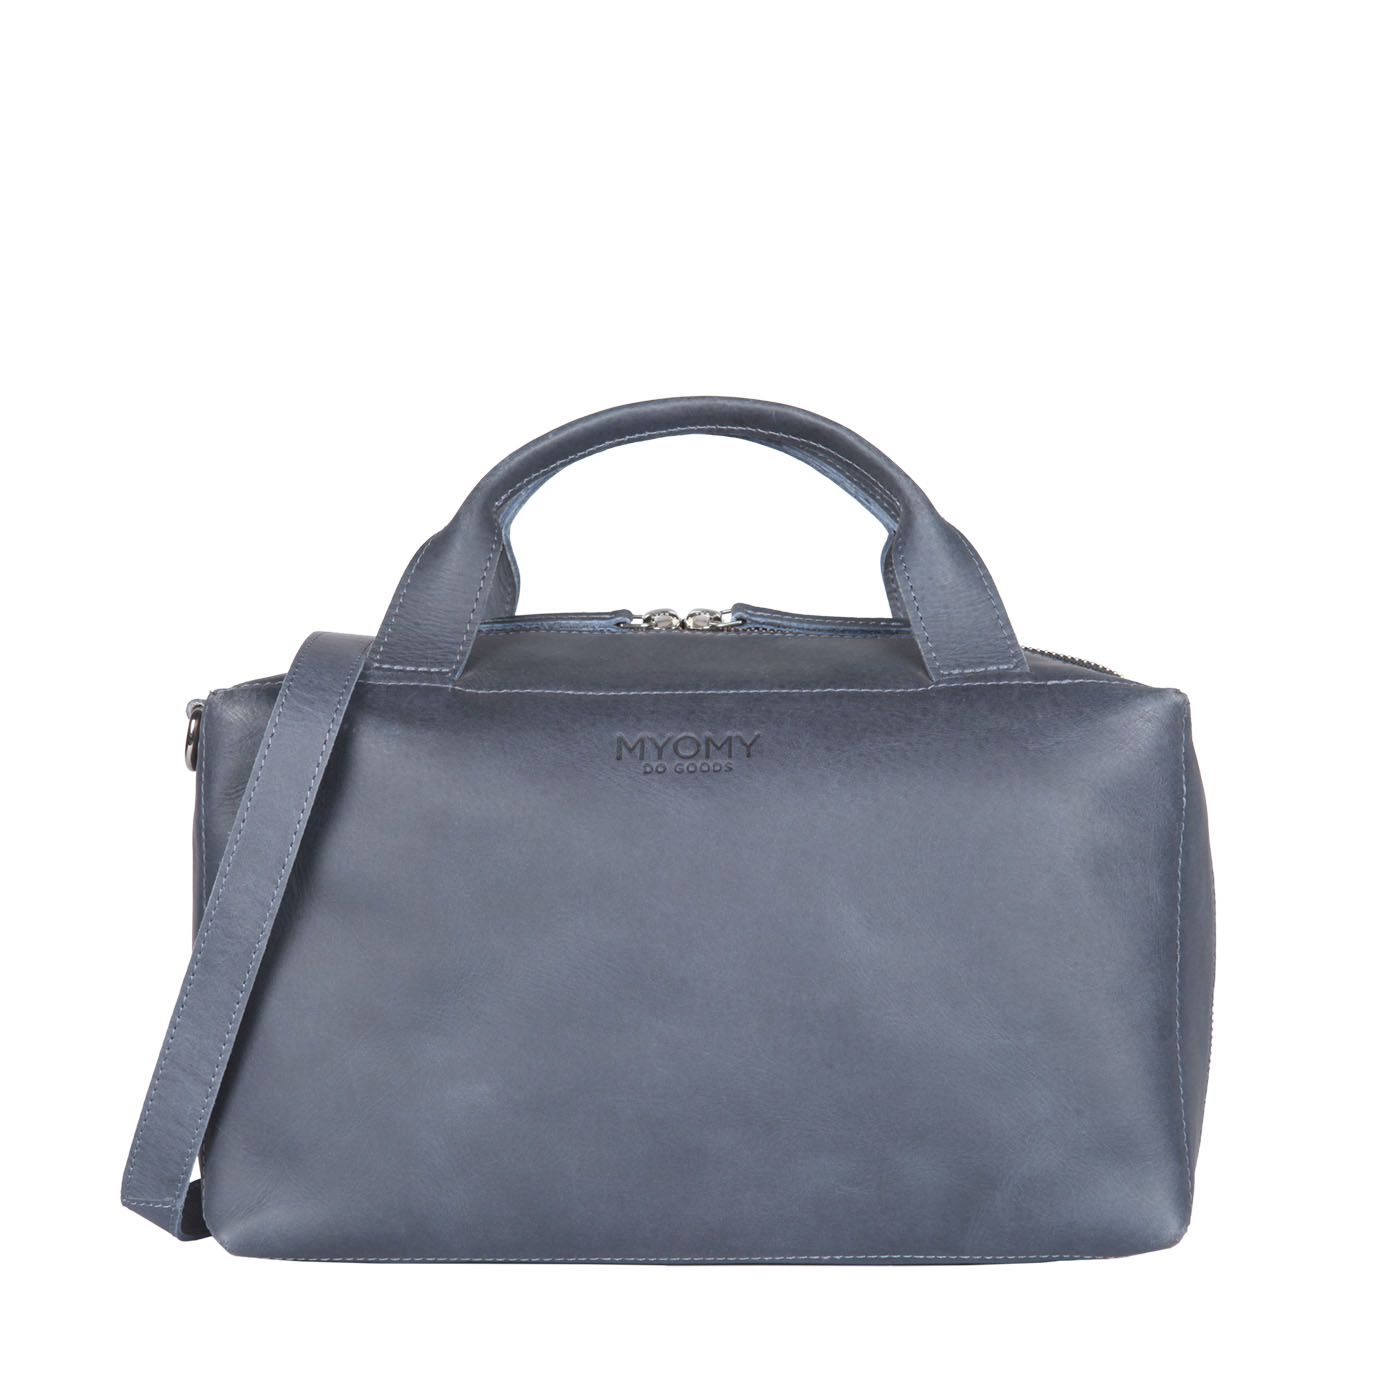 MY BOXY BAG Workbag - hunter navy blue